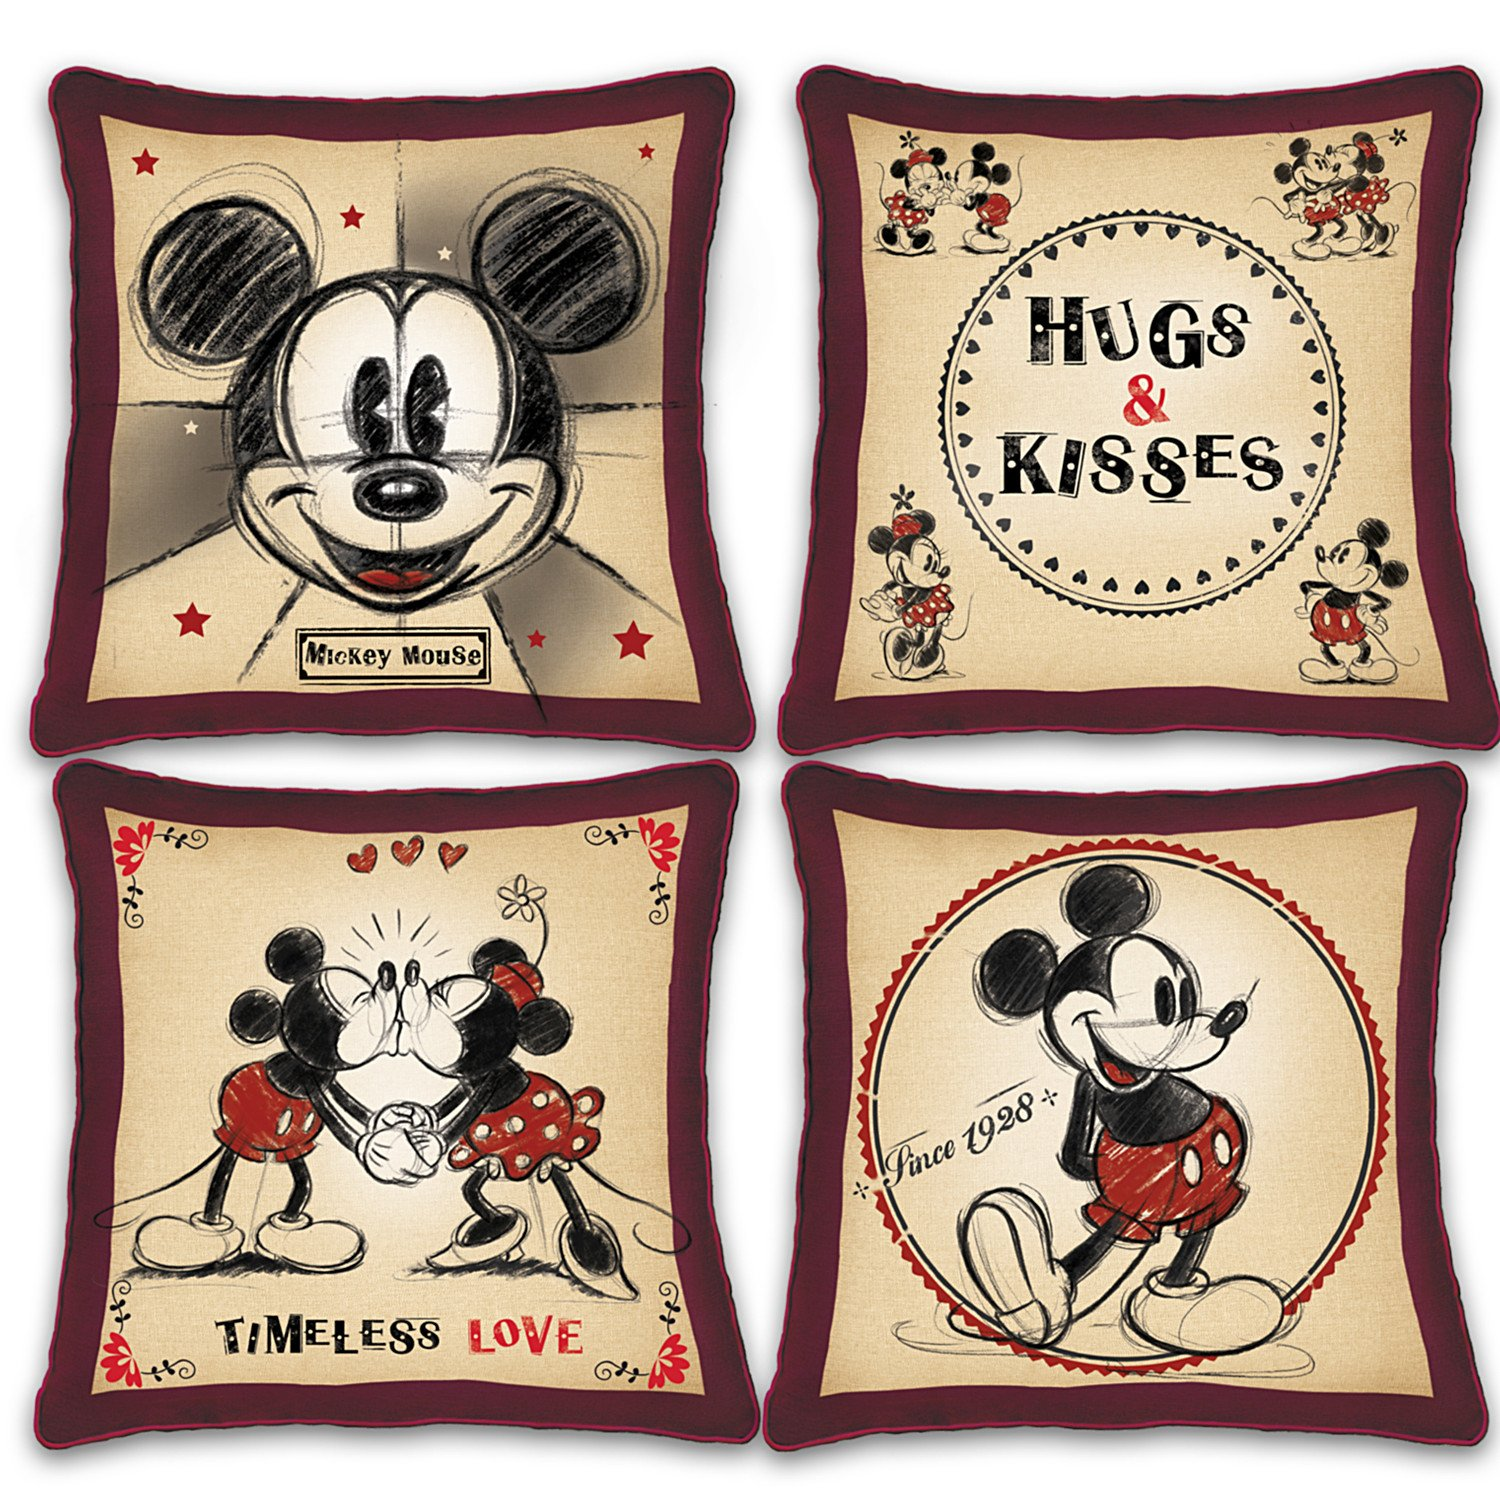 Disney Mickey Mouse and Minnie Mouse 4 Piece Pillow Set with Vintage Style Art by The Bradford Exchange